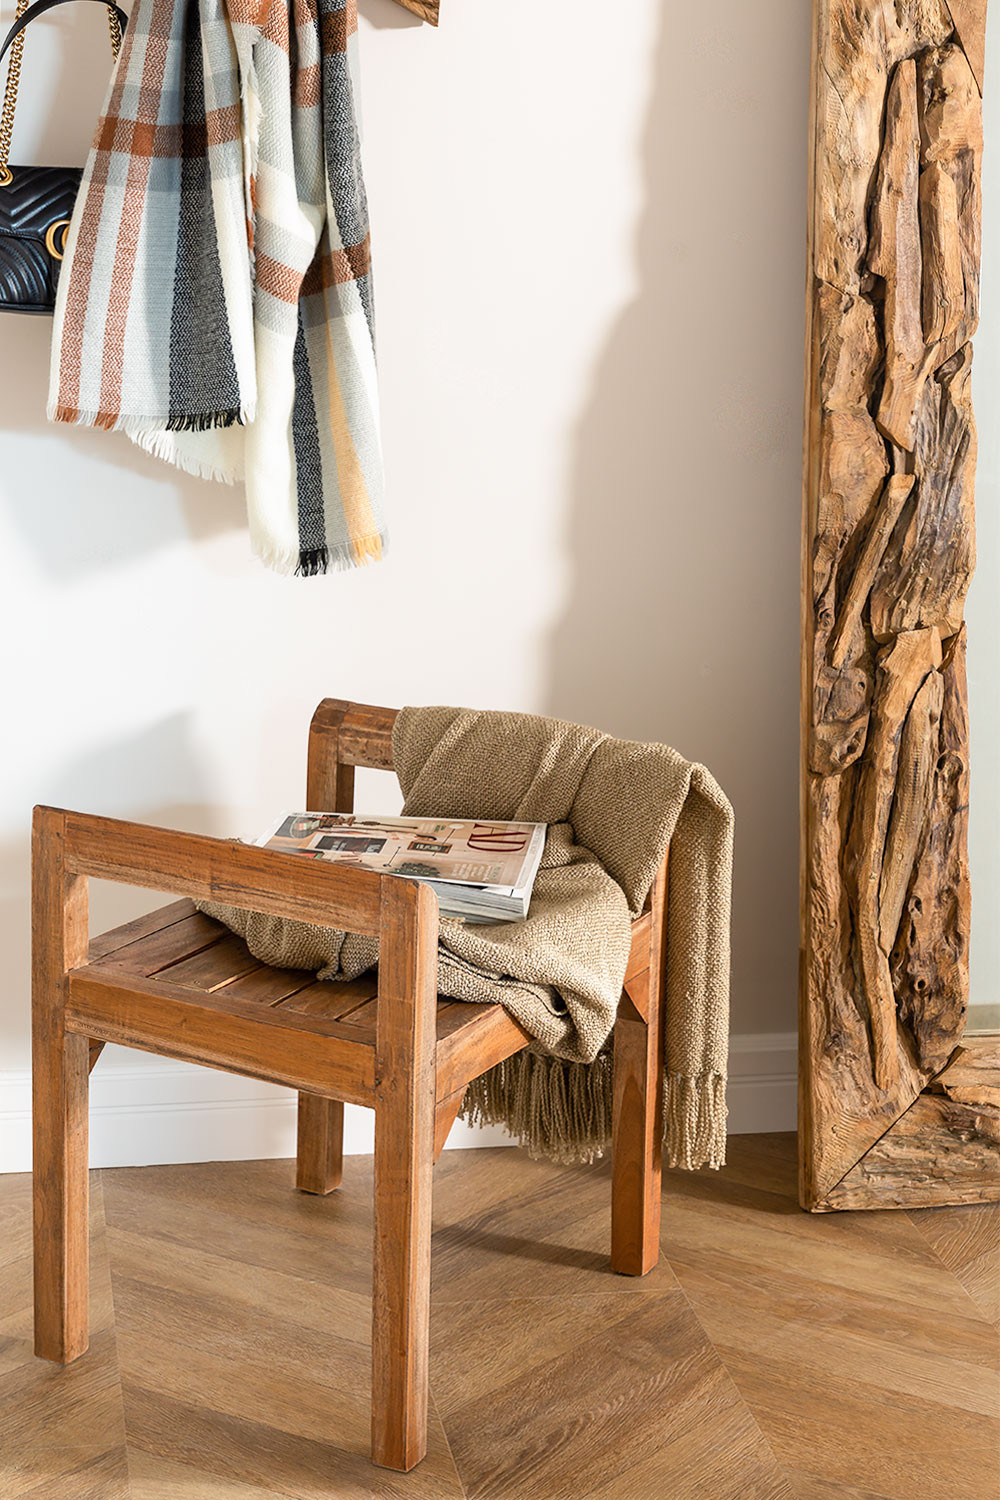 Recycled Wood Armchair Parans, gallery image 1